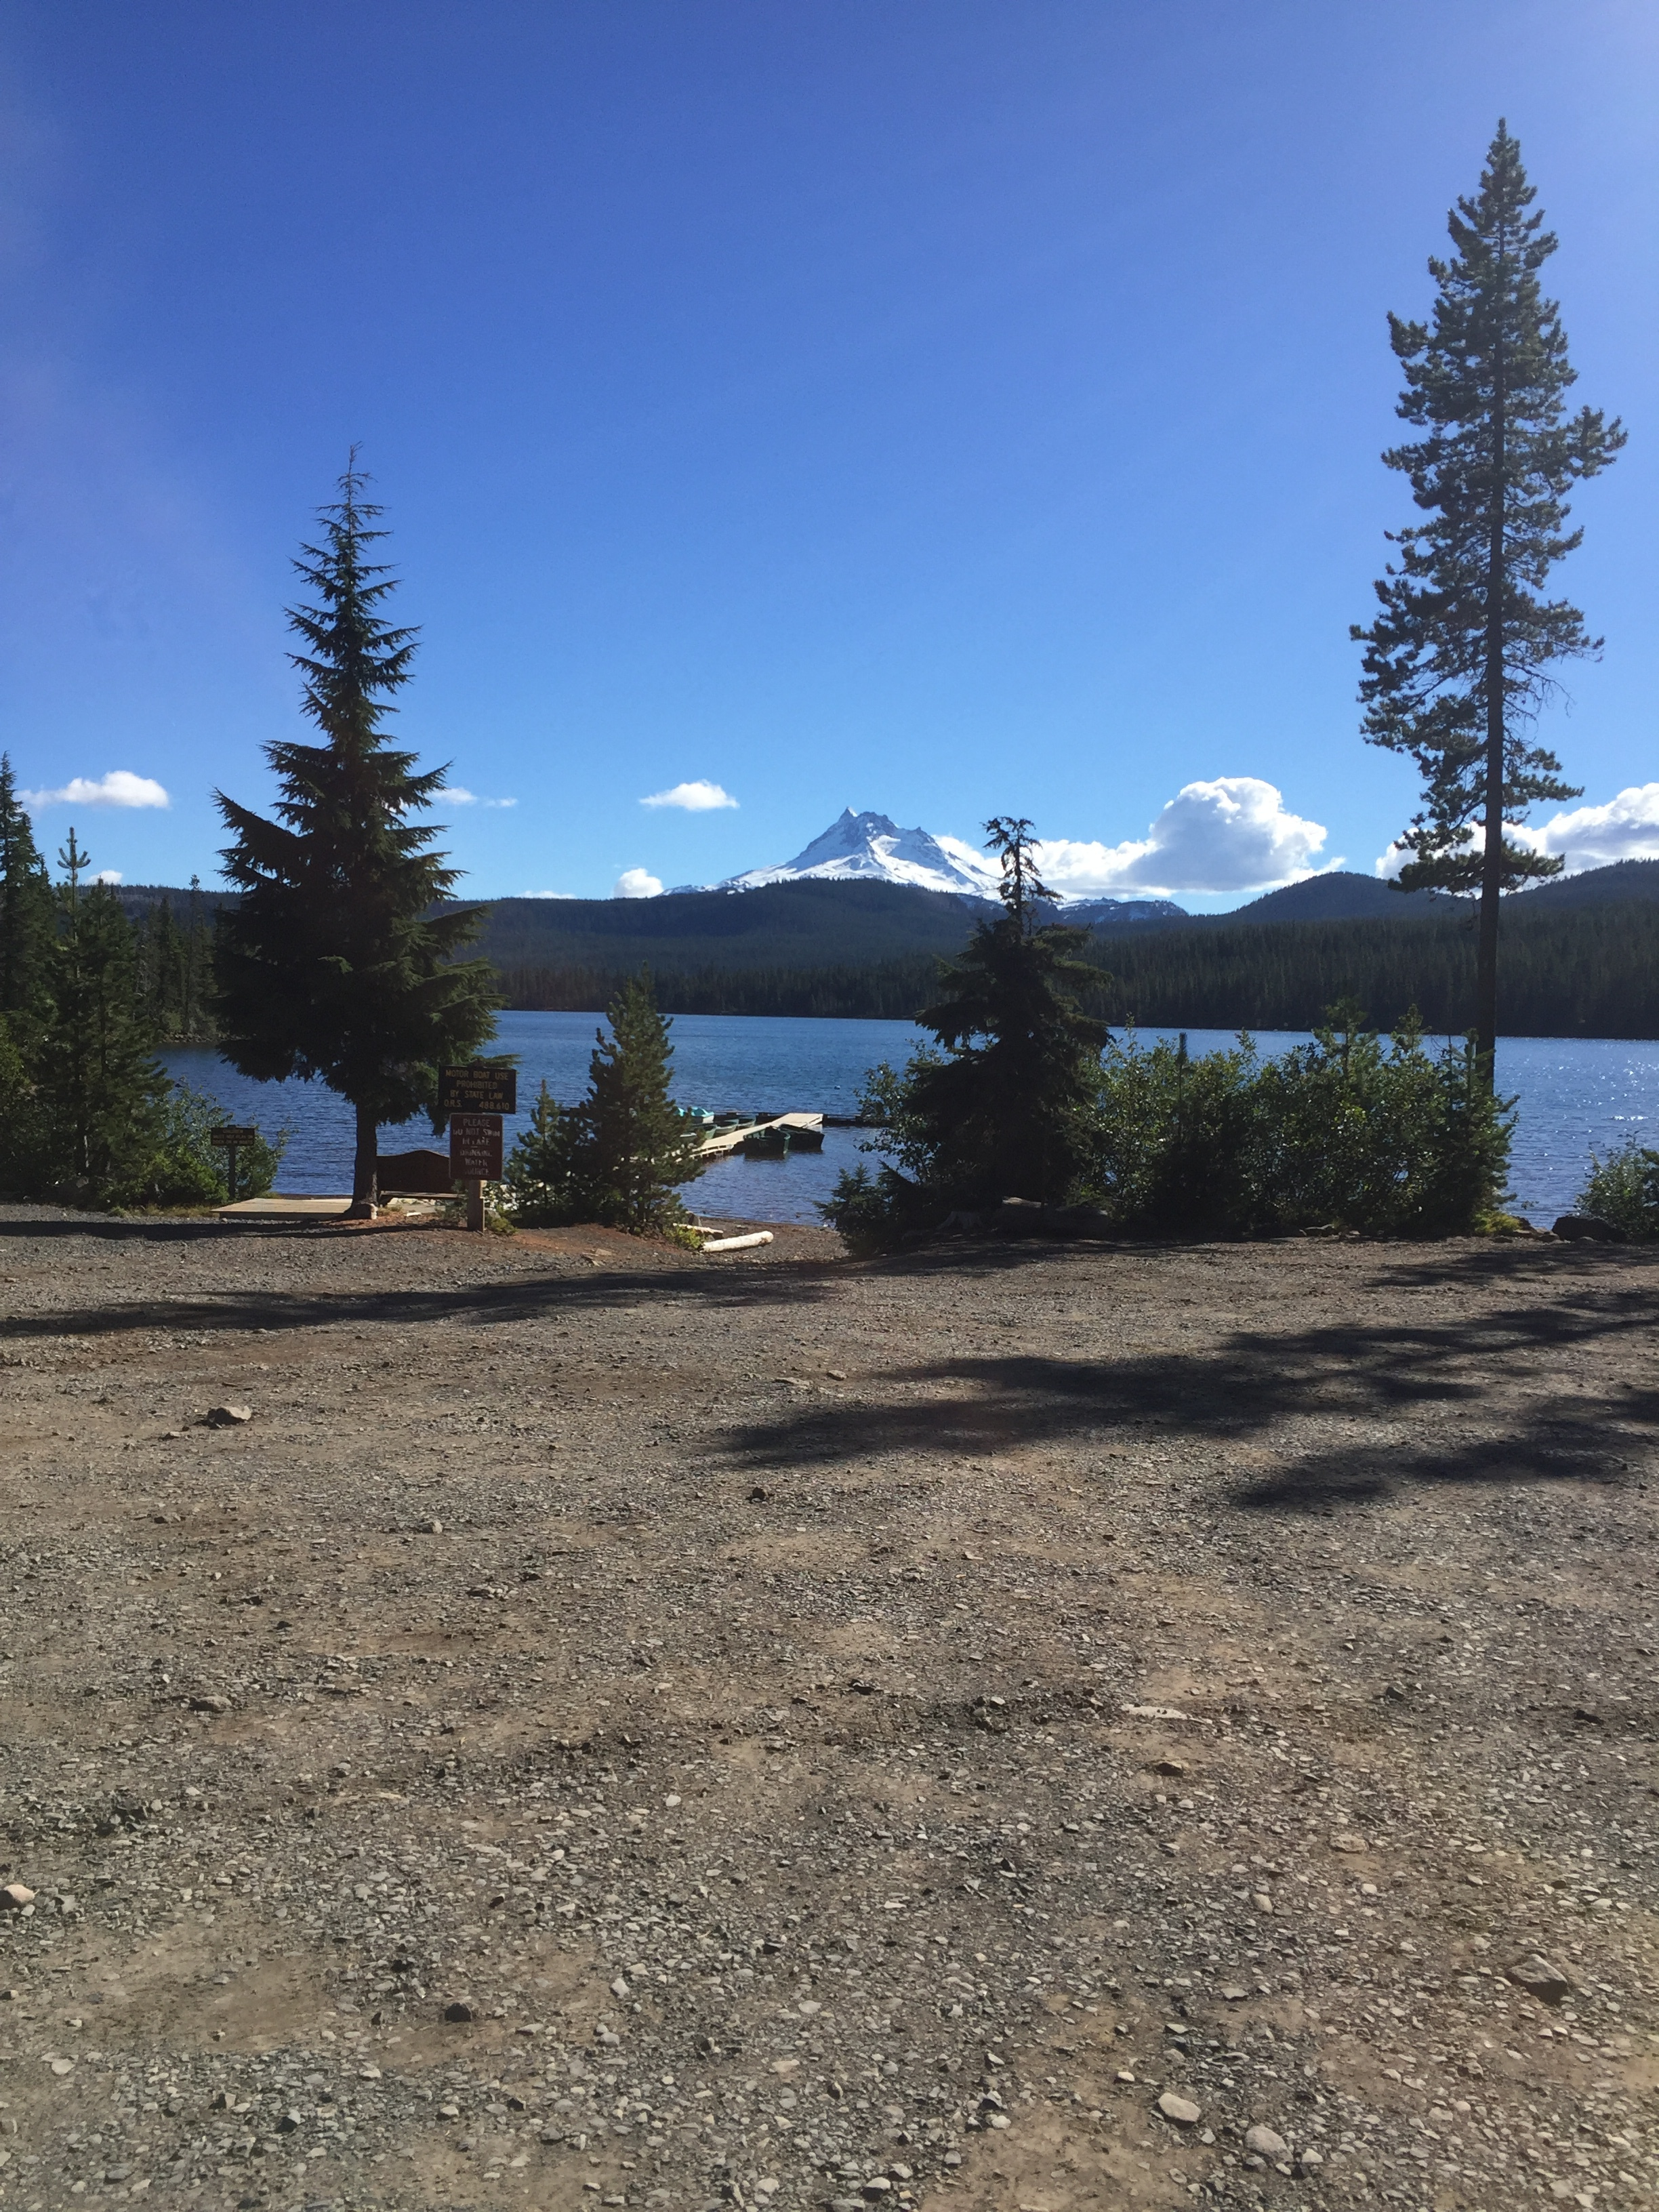 Olallie Lake and Mt. Jefferson